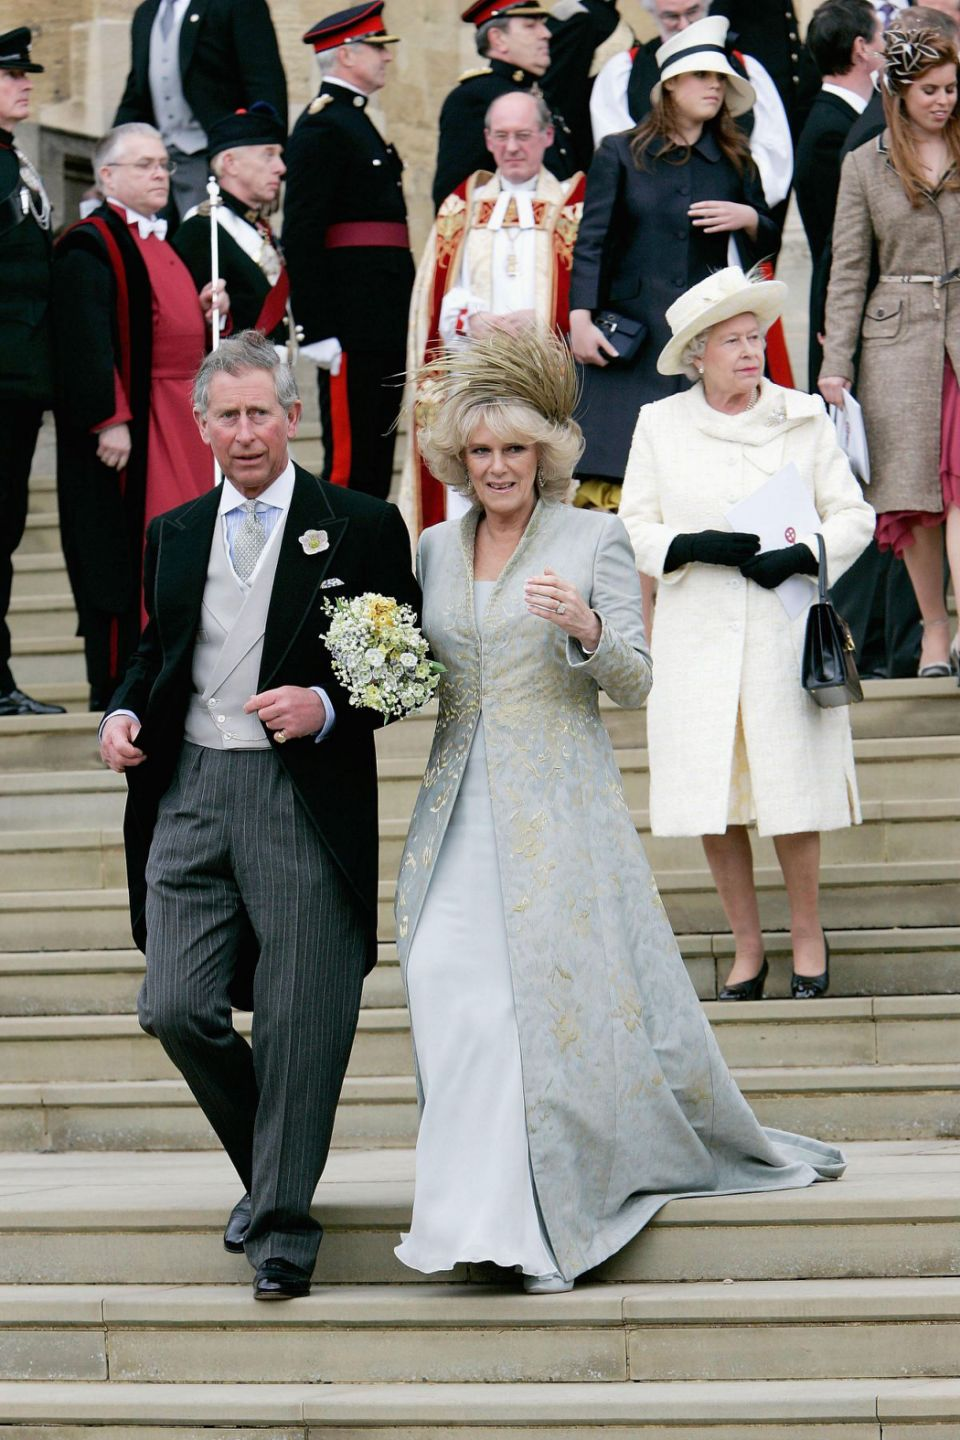 The Queen is pictured at Prince Charles and Camilla's wedding day. Photo Getty Images